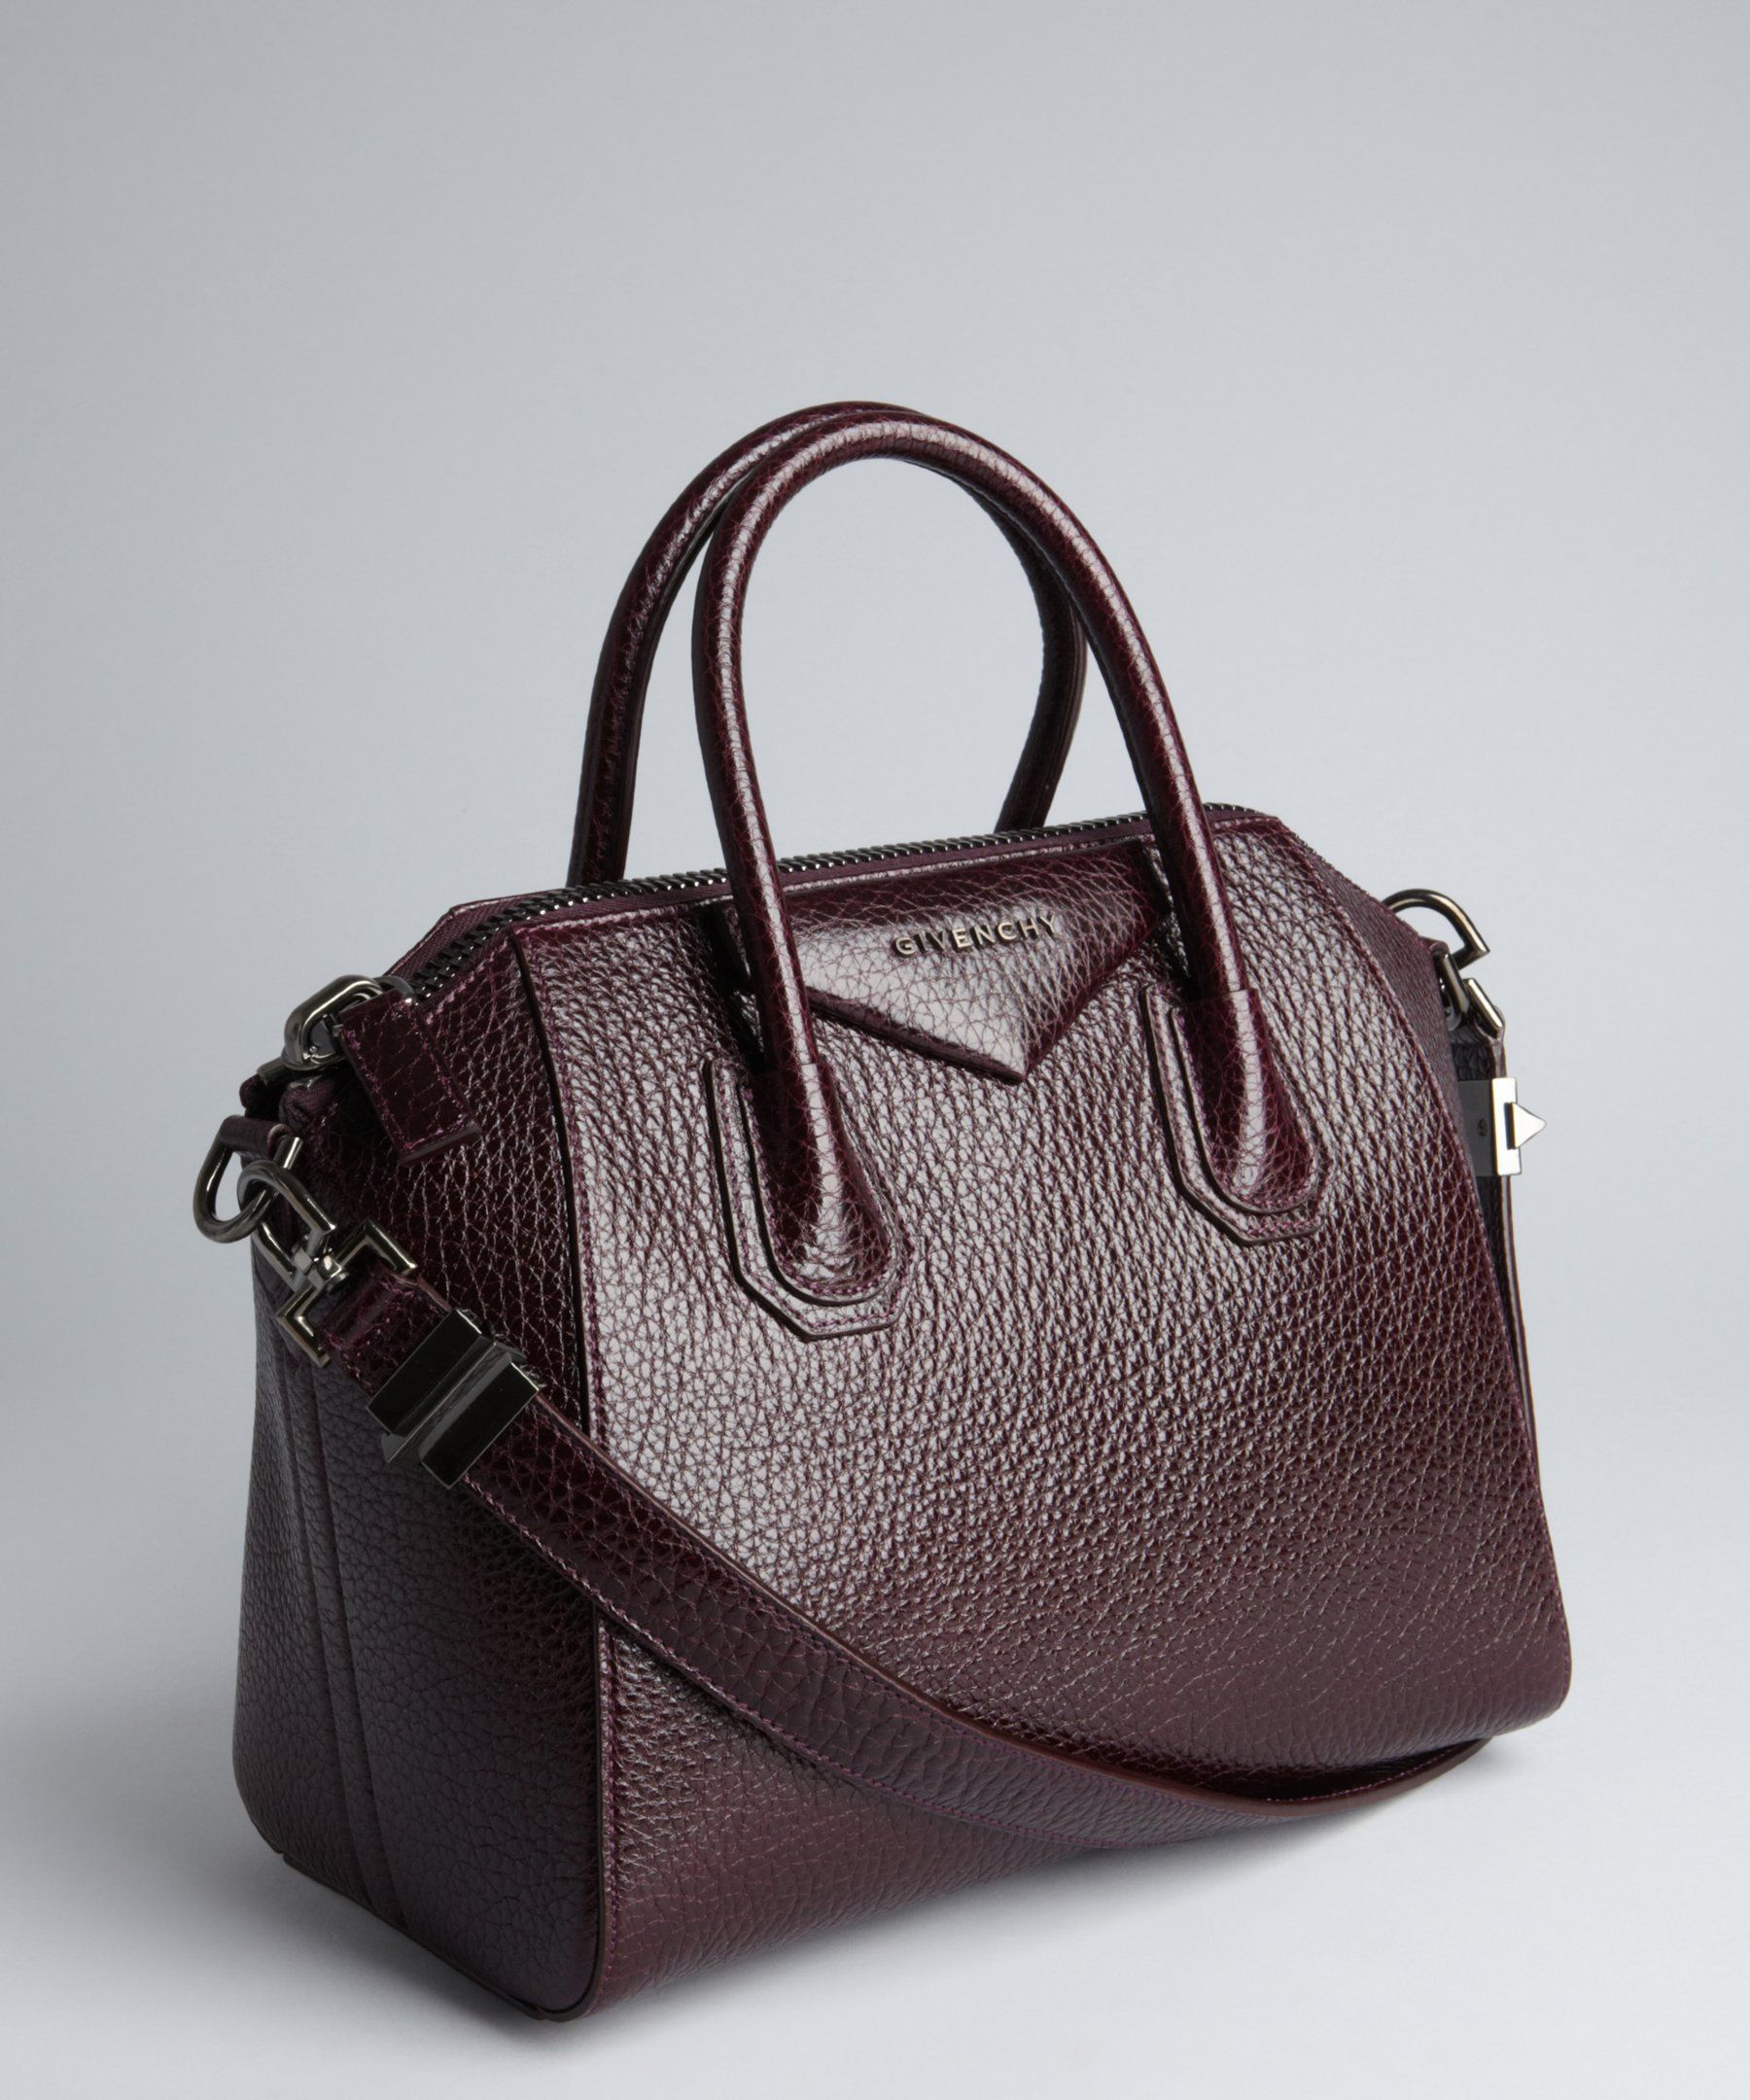 Givenchy purple pebbled leather 'Antigona' small satchel | BLUEFLY up to 70% off designer brands